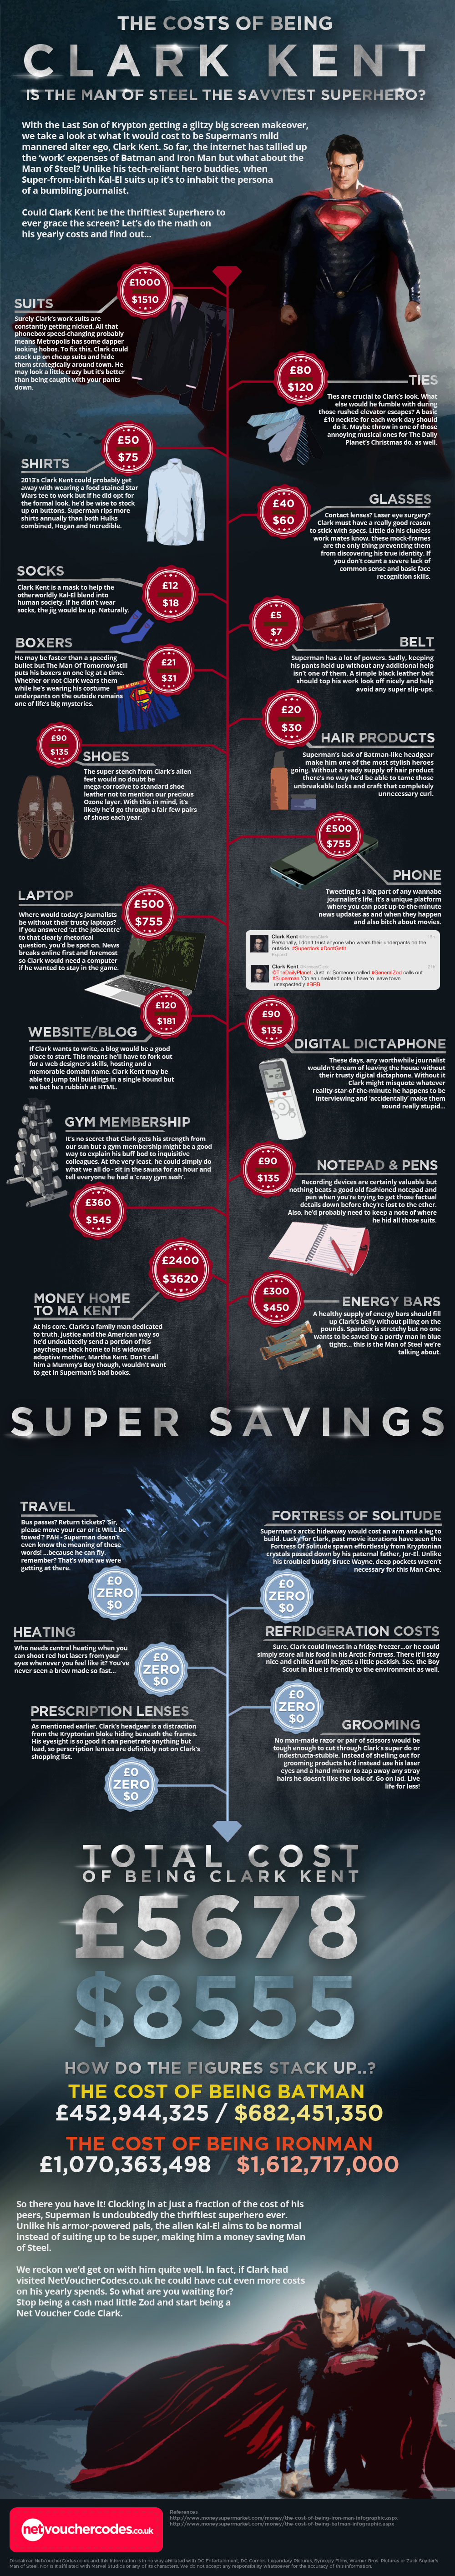 The Cost of Being Clark Kent (Superman)